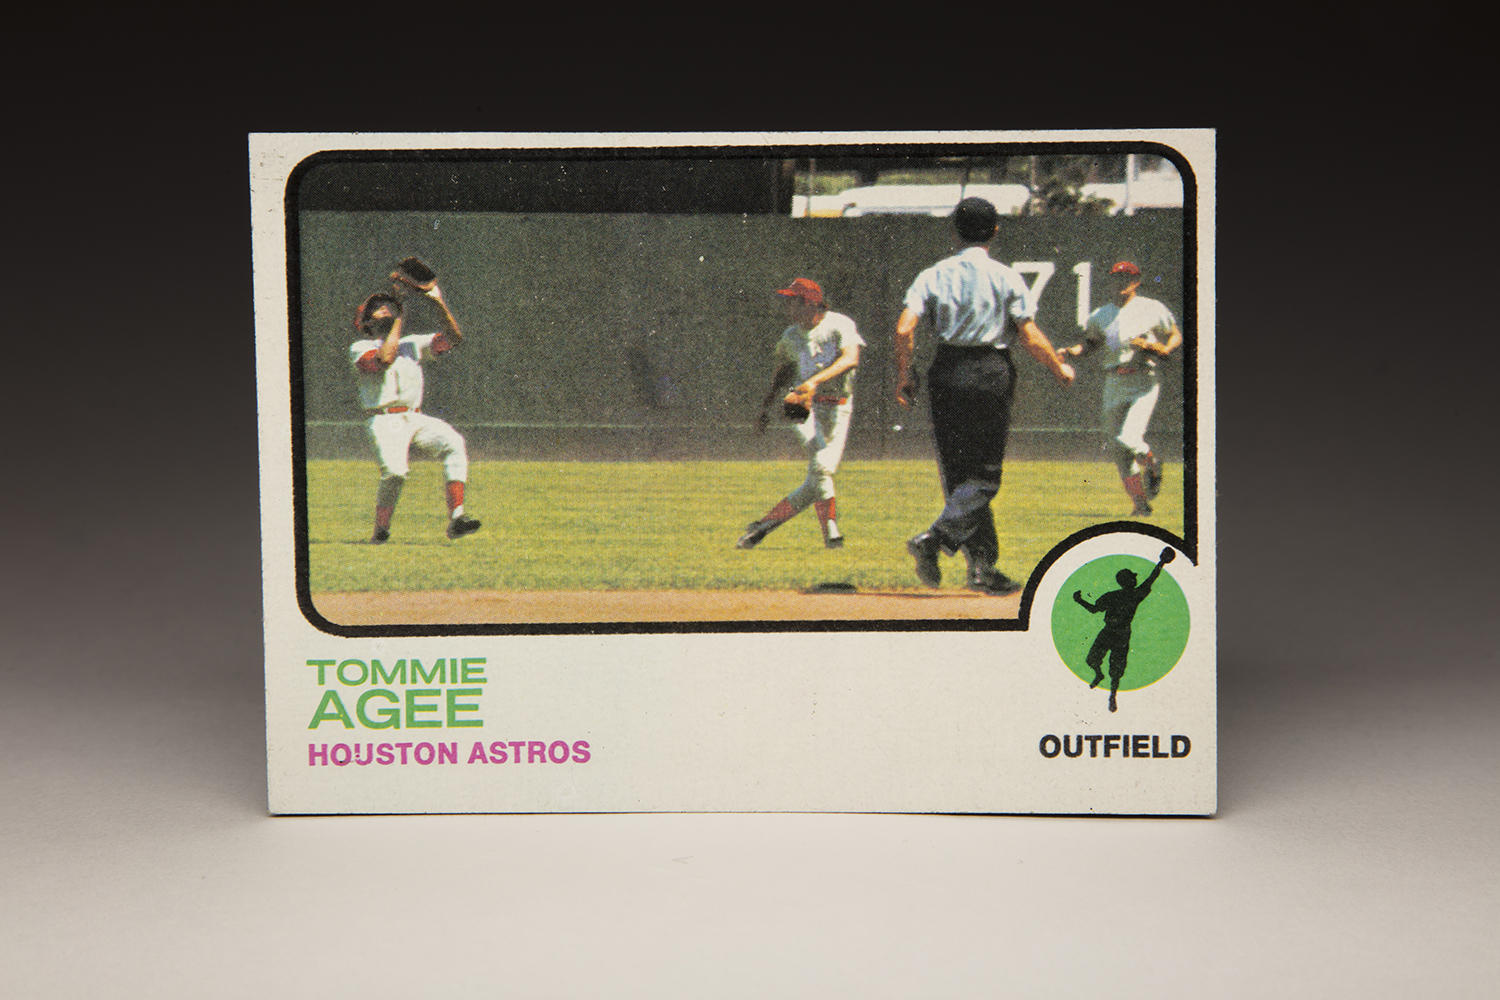 In its 1973 set, Topps tried to include as many action shots as possible. An example of this is shown on Tommie Agee's 1973 Topps card, pictured above. (Milo Stewart Jr./National Baseball Hall of Fame and Museum)